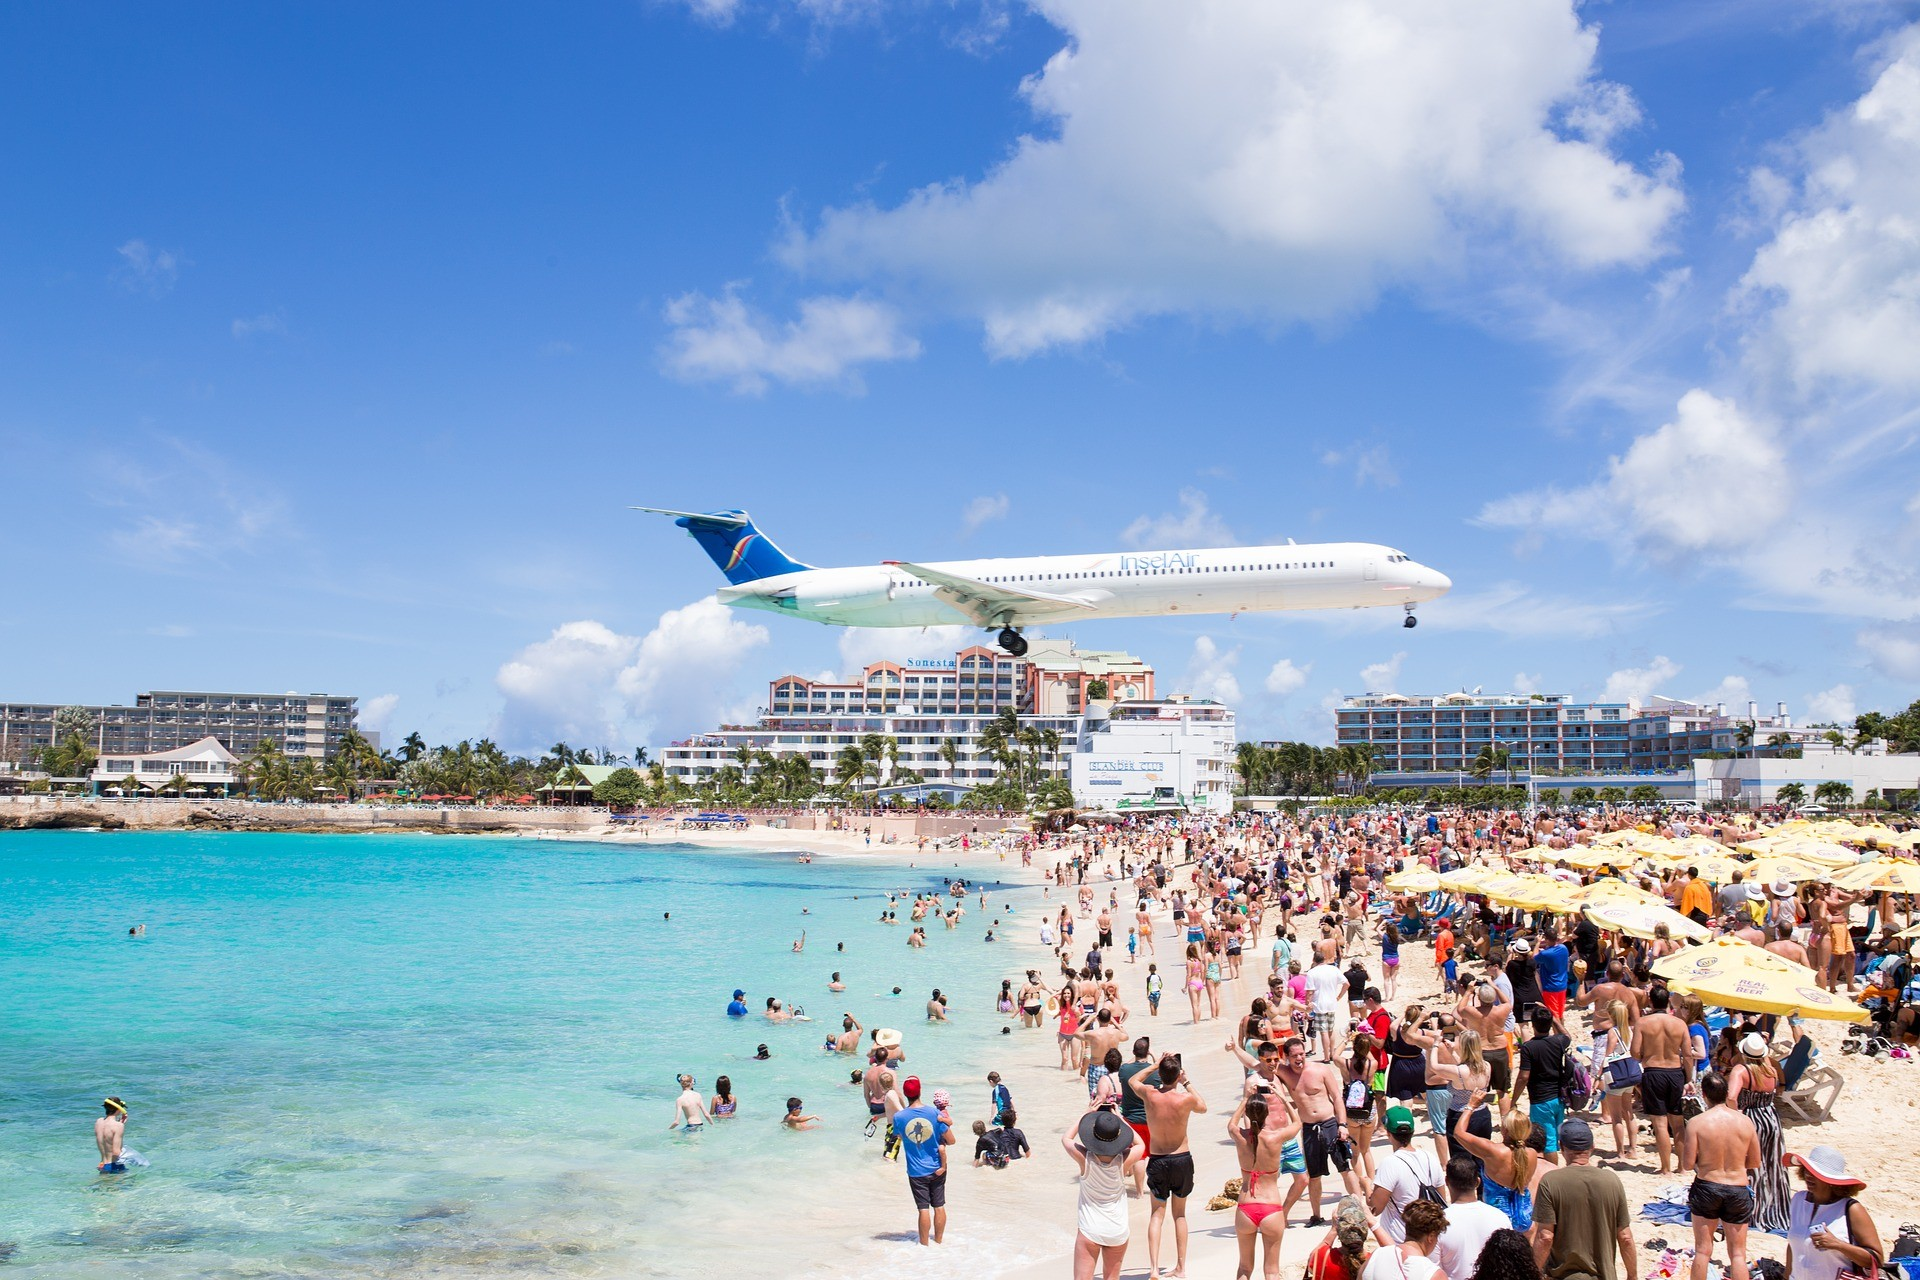 Planespotting Maho Beach